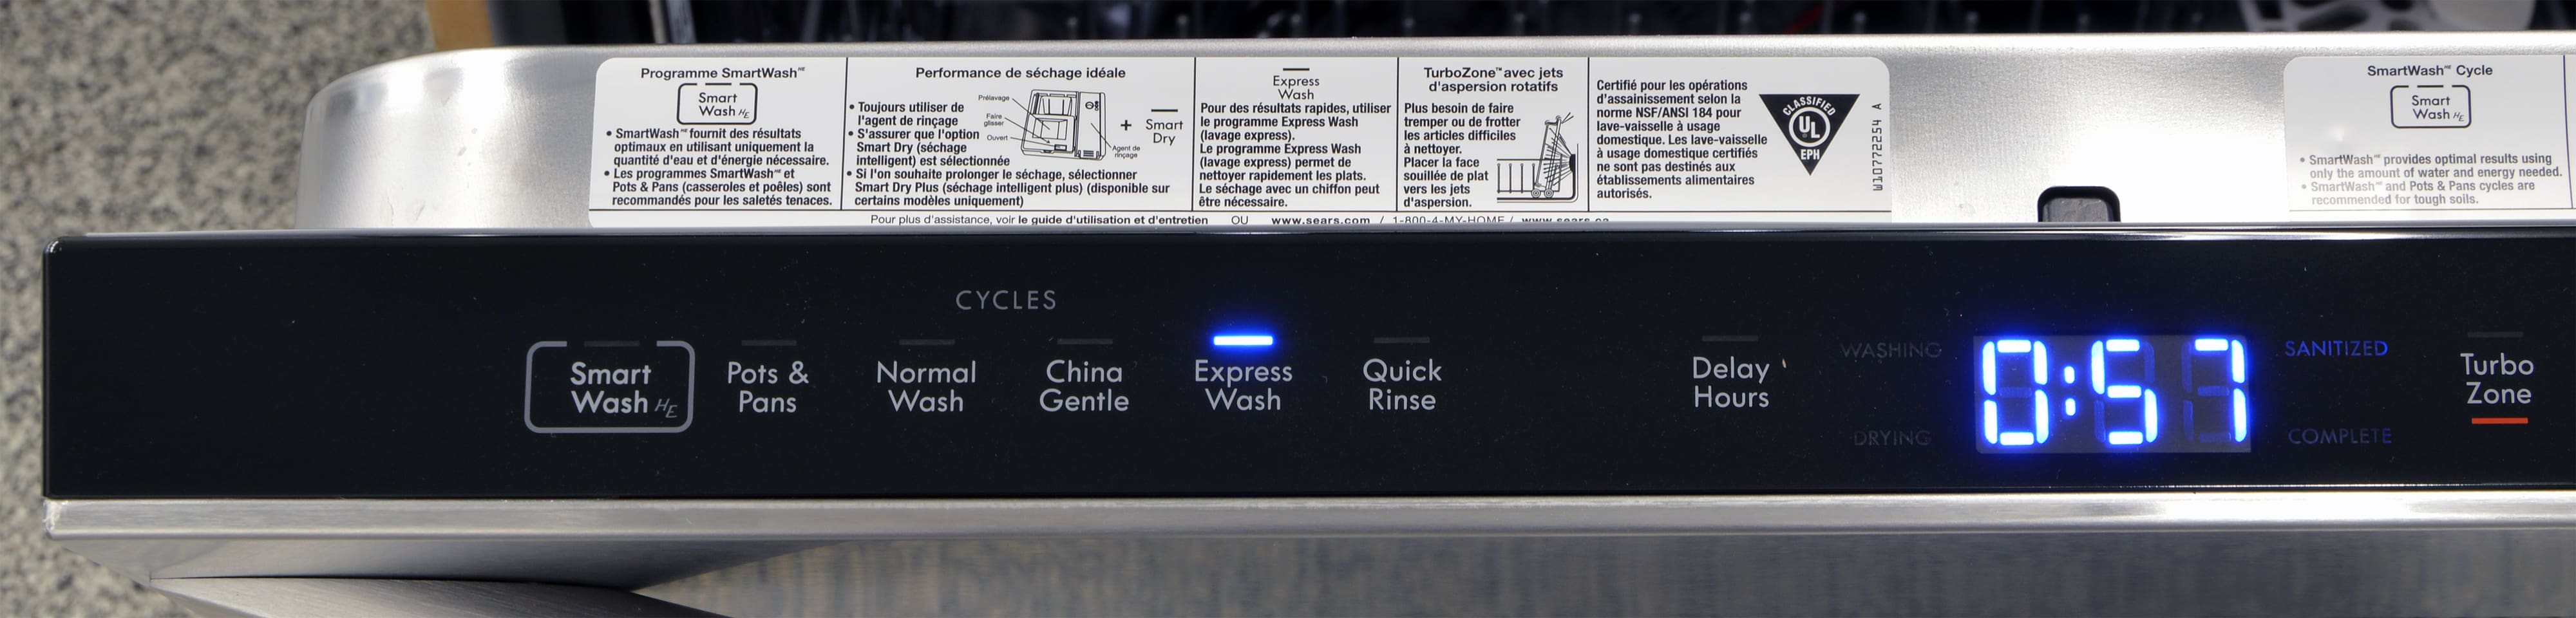 The left side of the control panel, which has cycle selection